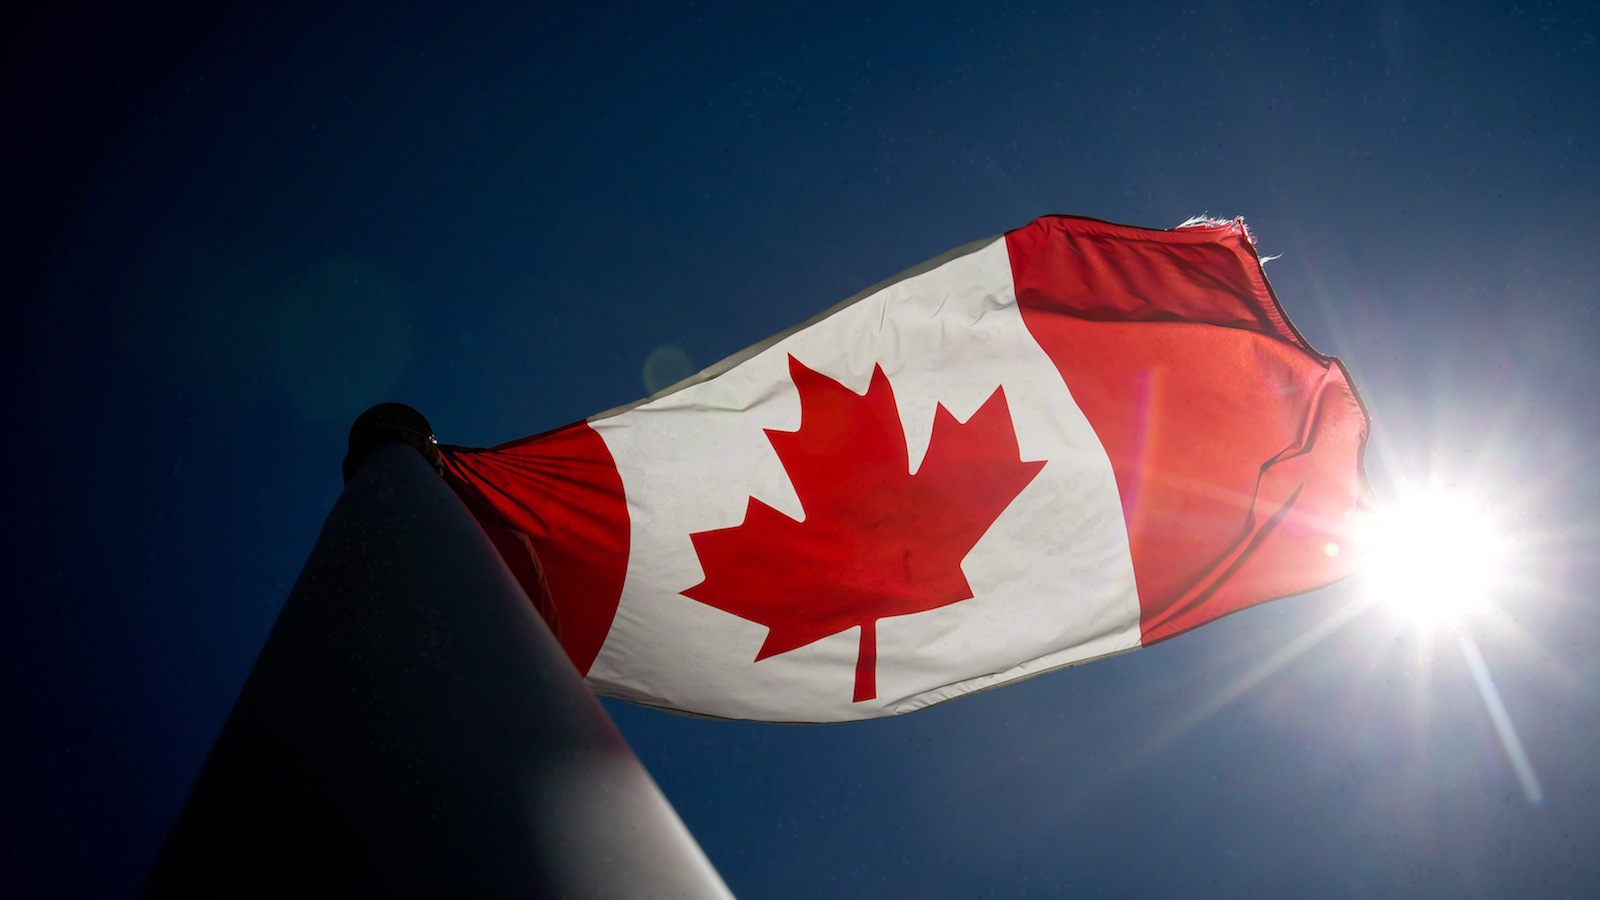 canadians favour openness but isolationism brews poll finds